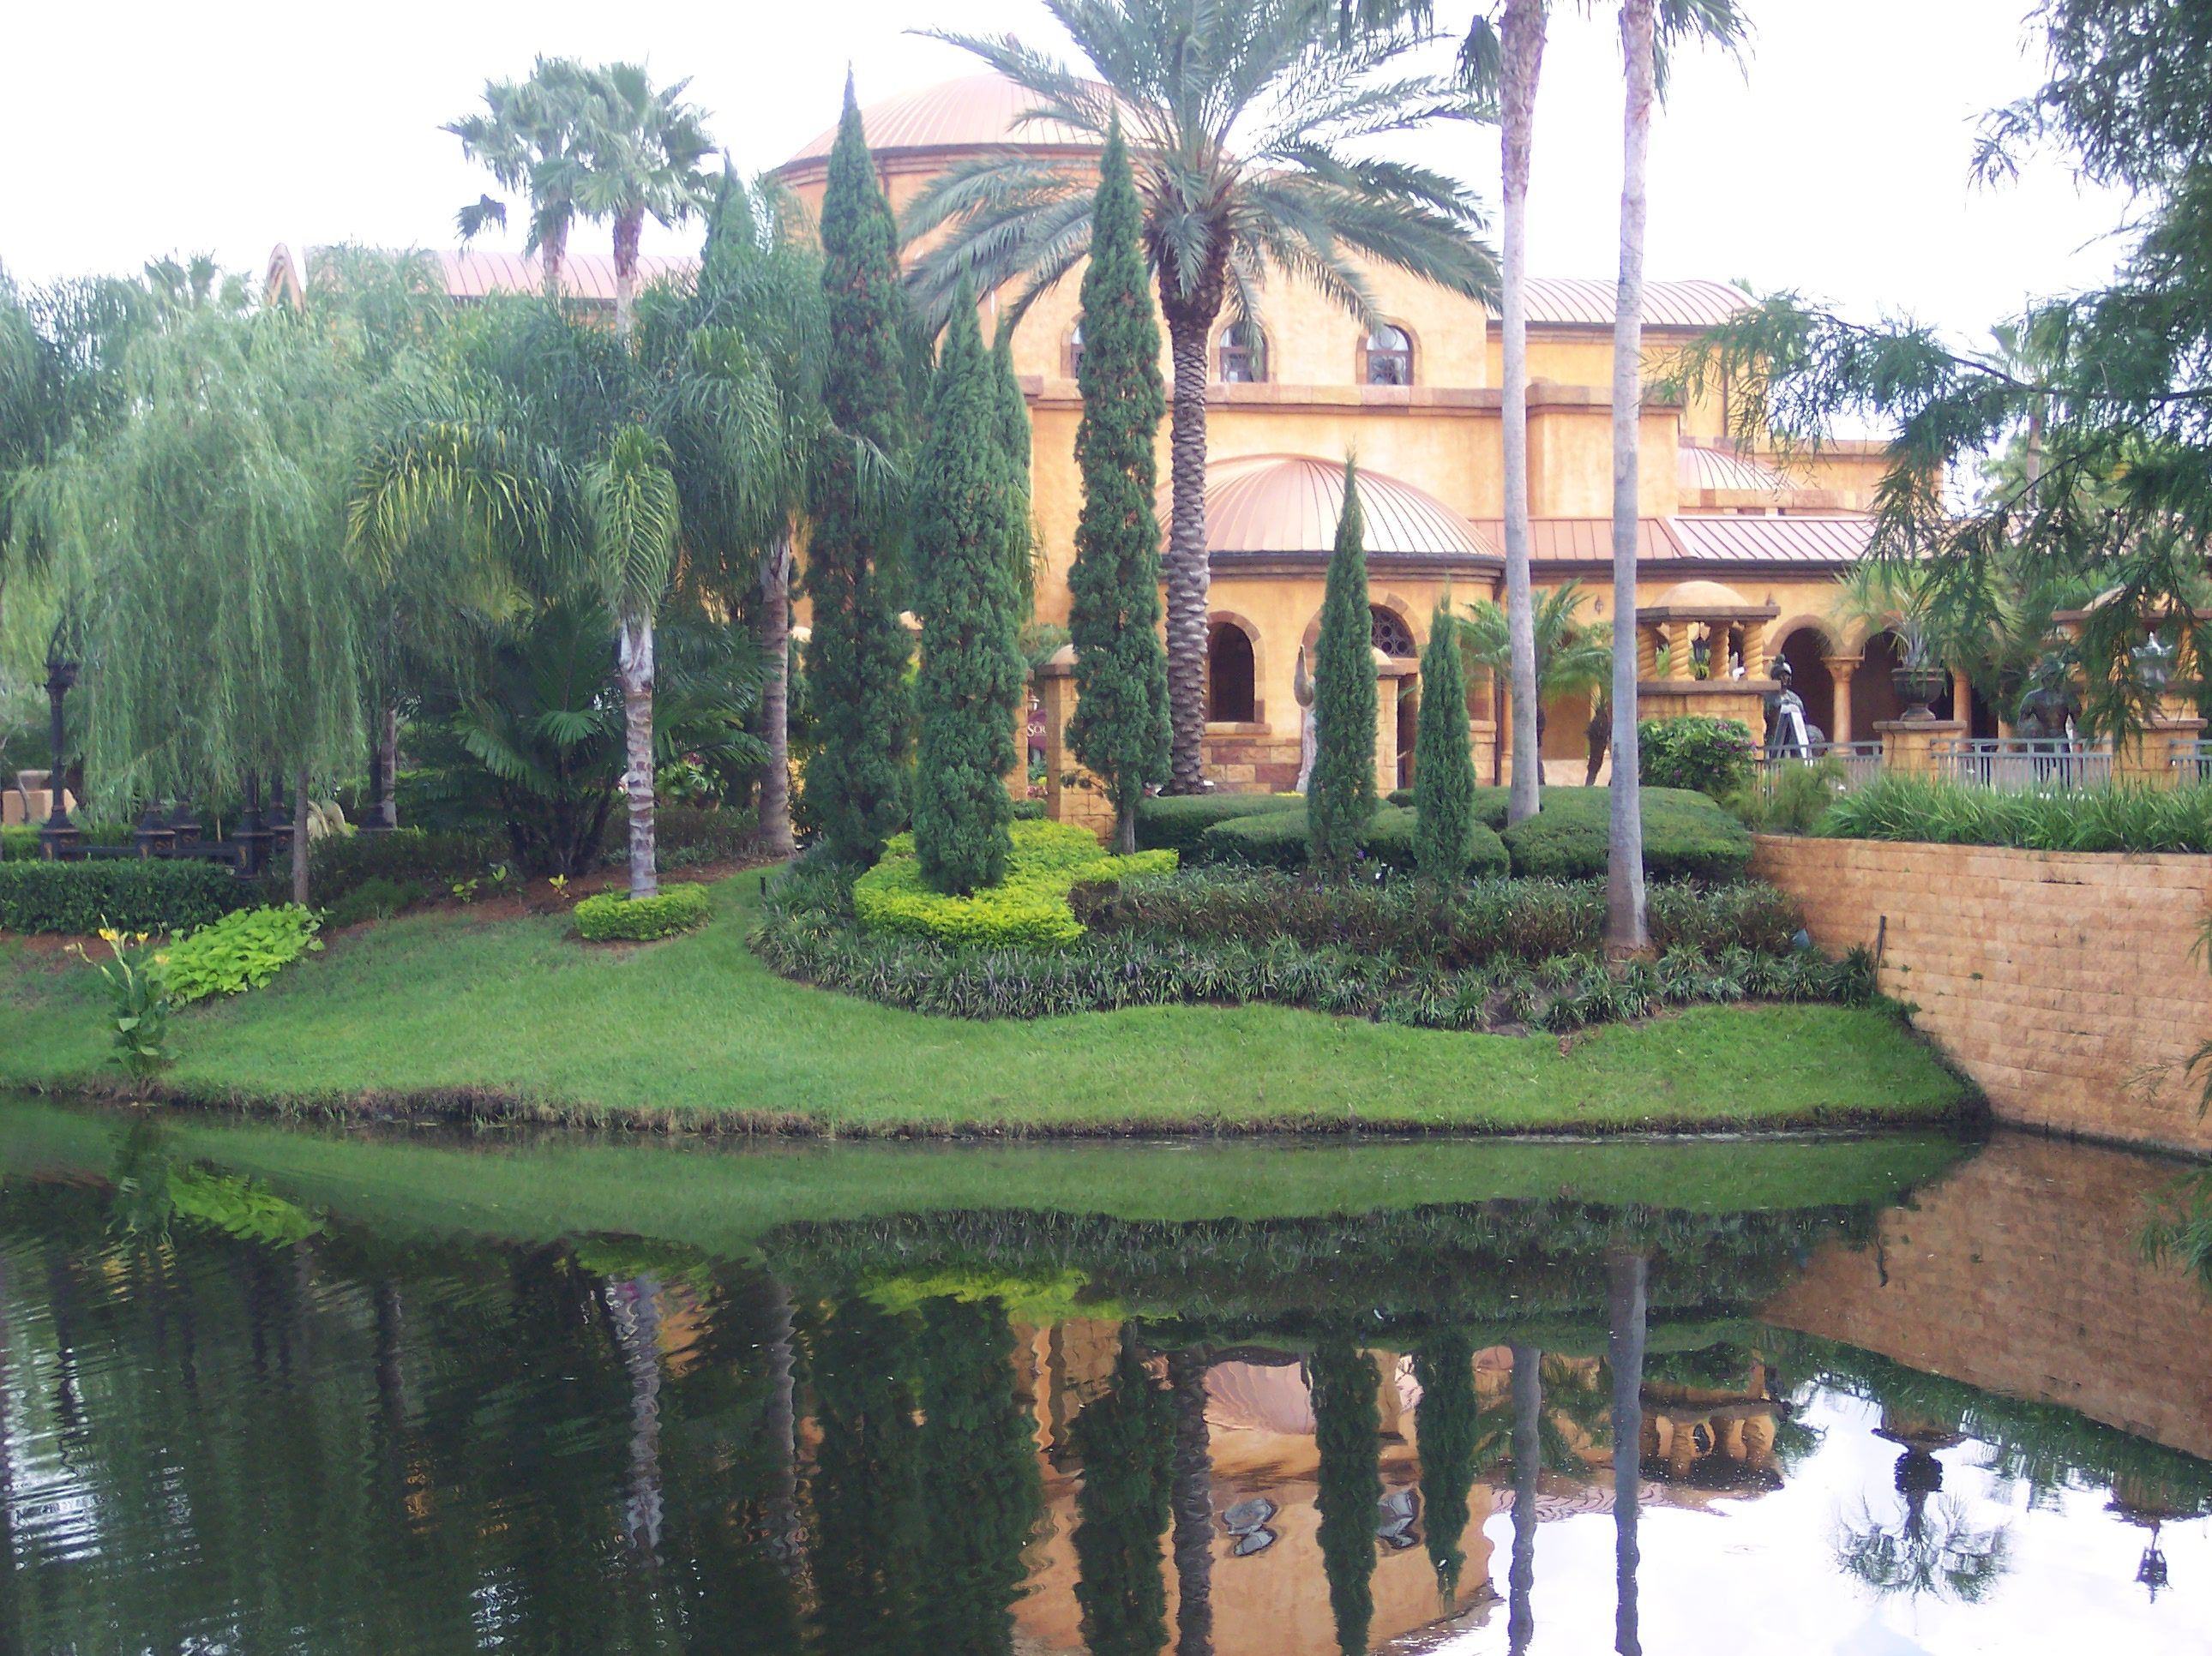 The Gardens The Holy Land Experience Orlando Florida 2011 Places I Have Been Pinterest